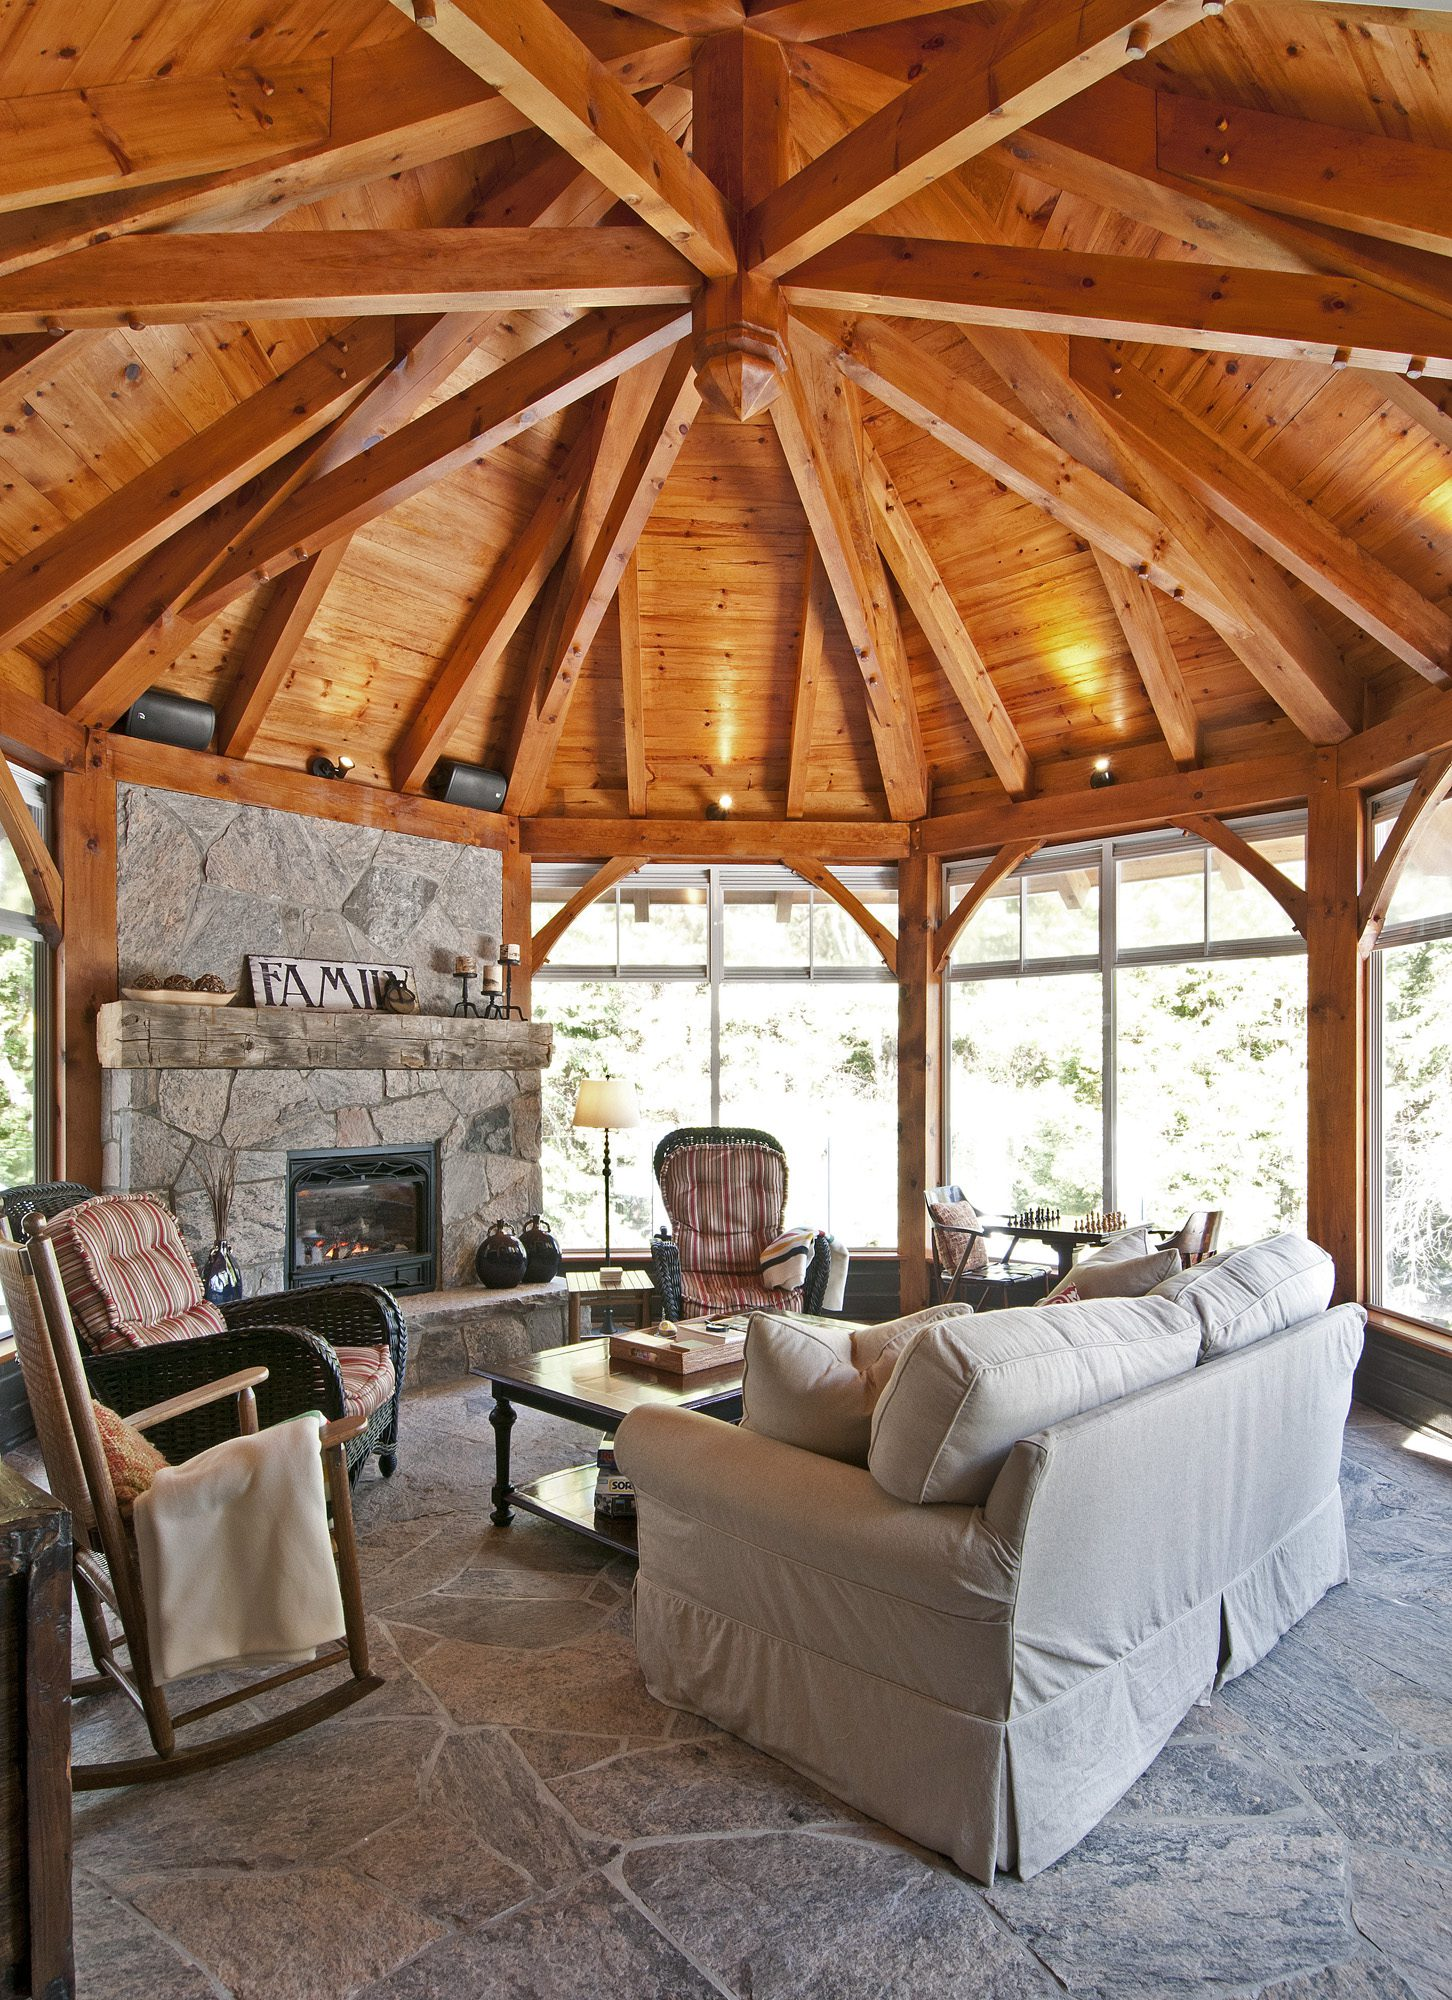 Normerica Timber Frame, Interior, Cottage, Screened Poch, Fireplace, Round Room